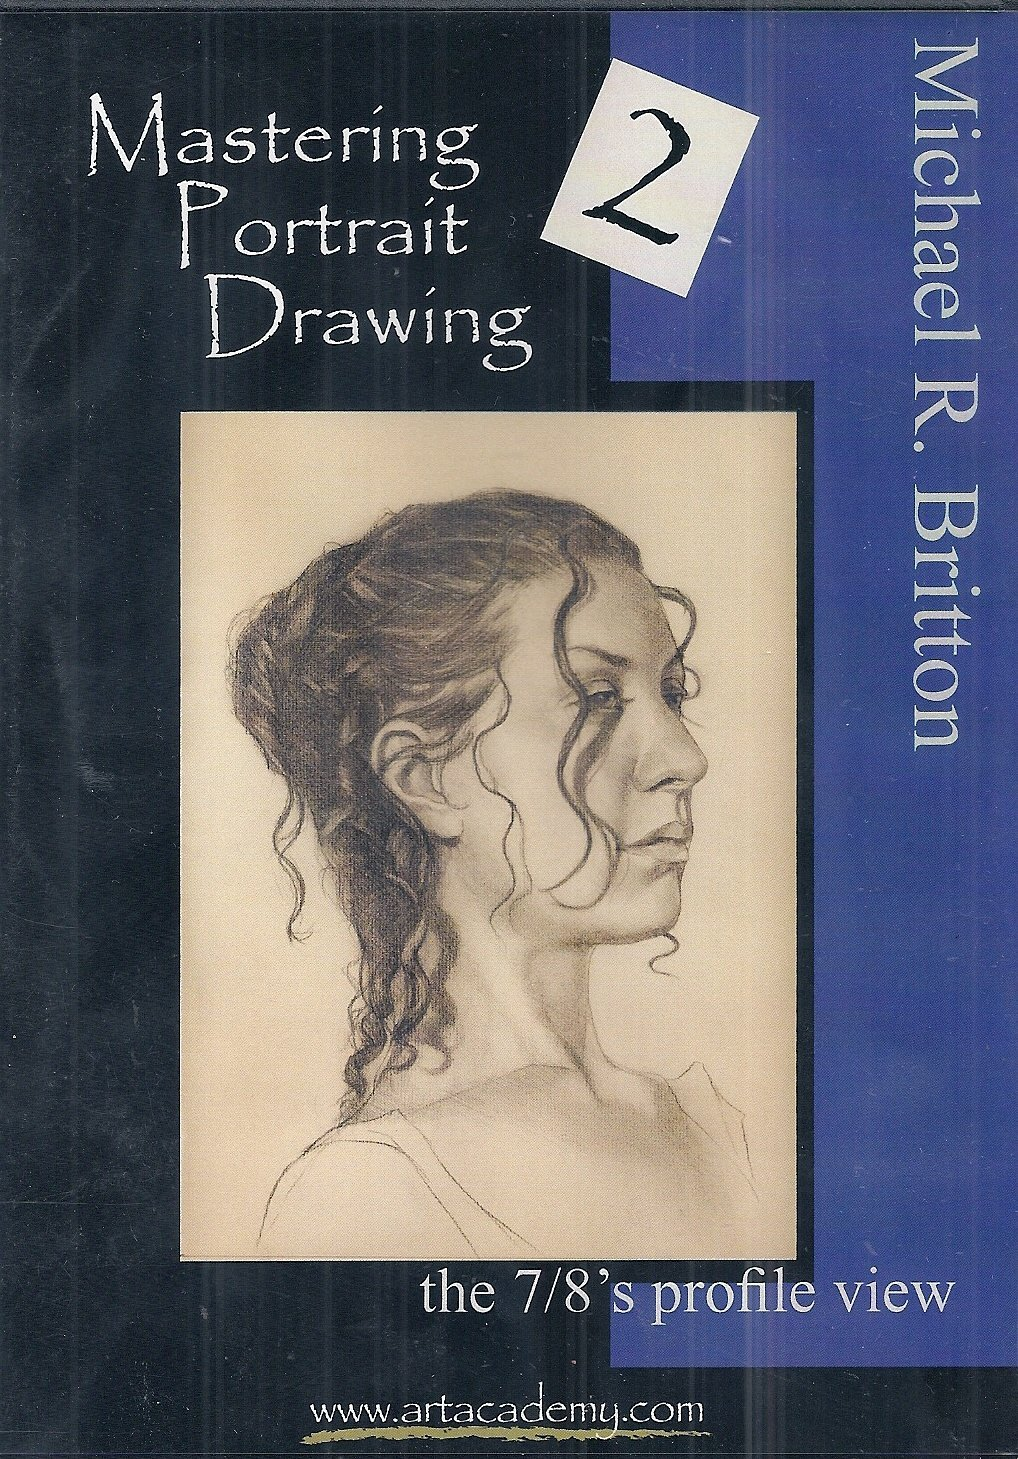 Mastering Portrait Drawing, Vol. 2 [DVD]